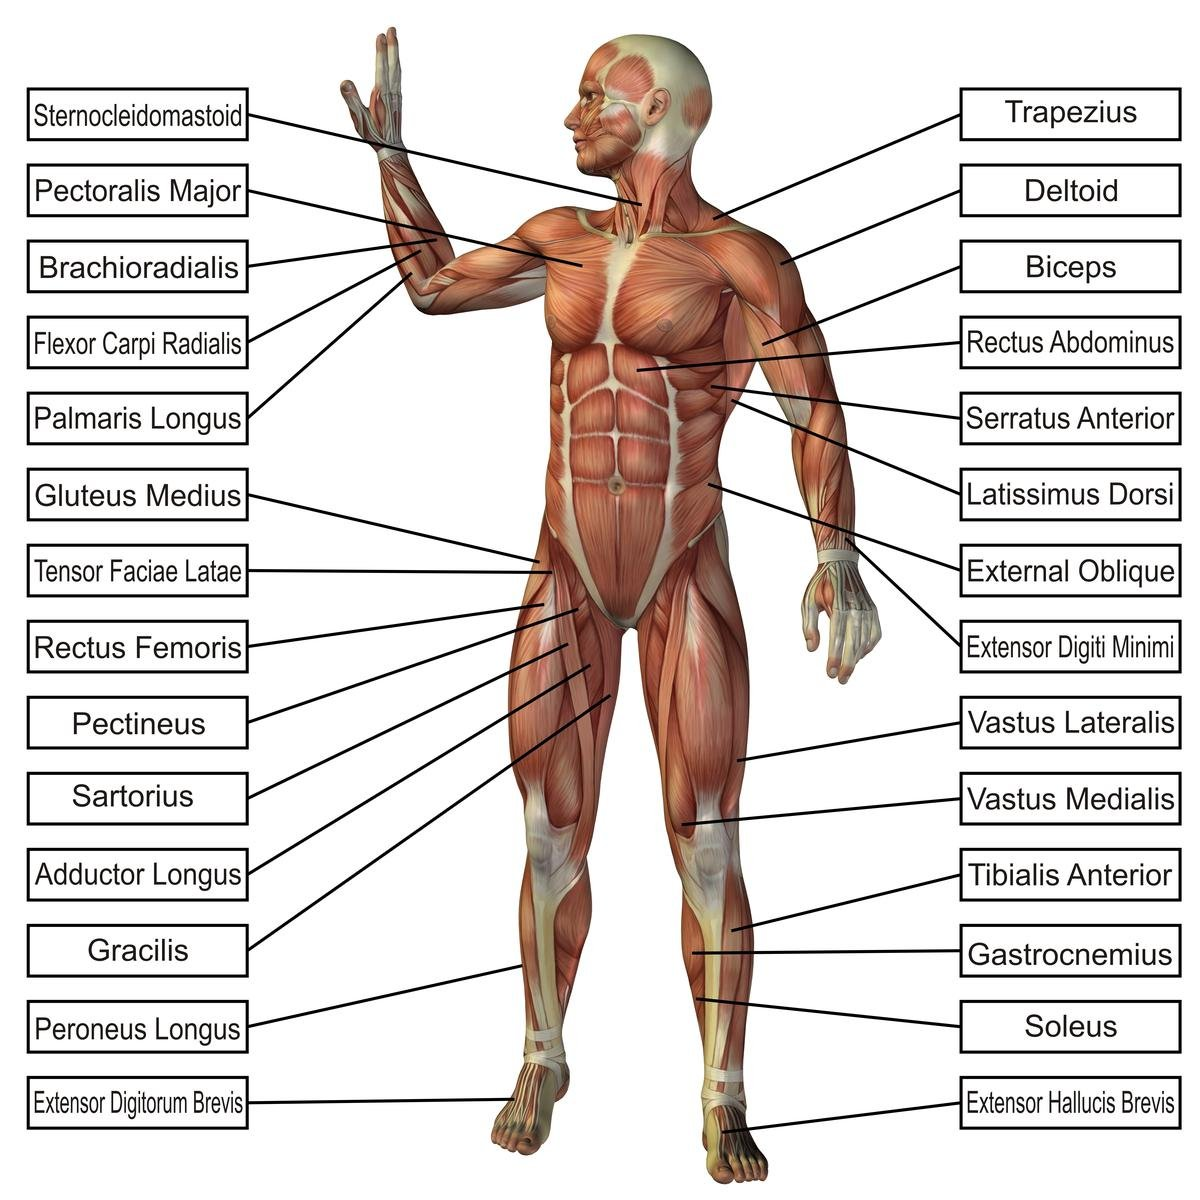 Amazon Laminated 24x24 Poster Anatomy Of Human Body Parts Body